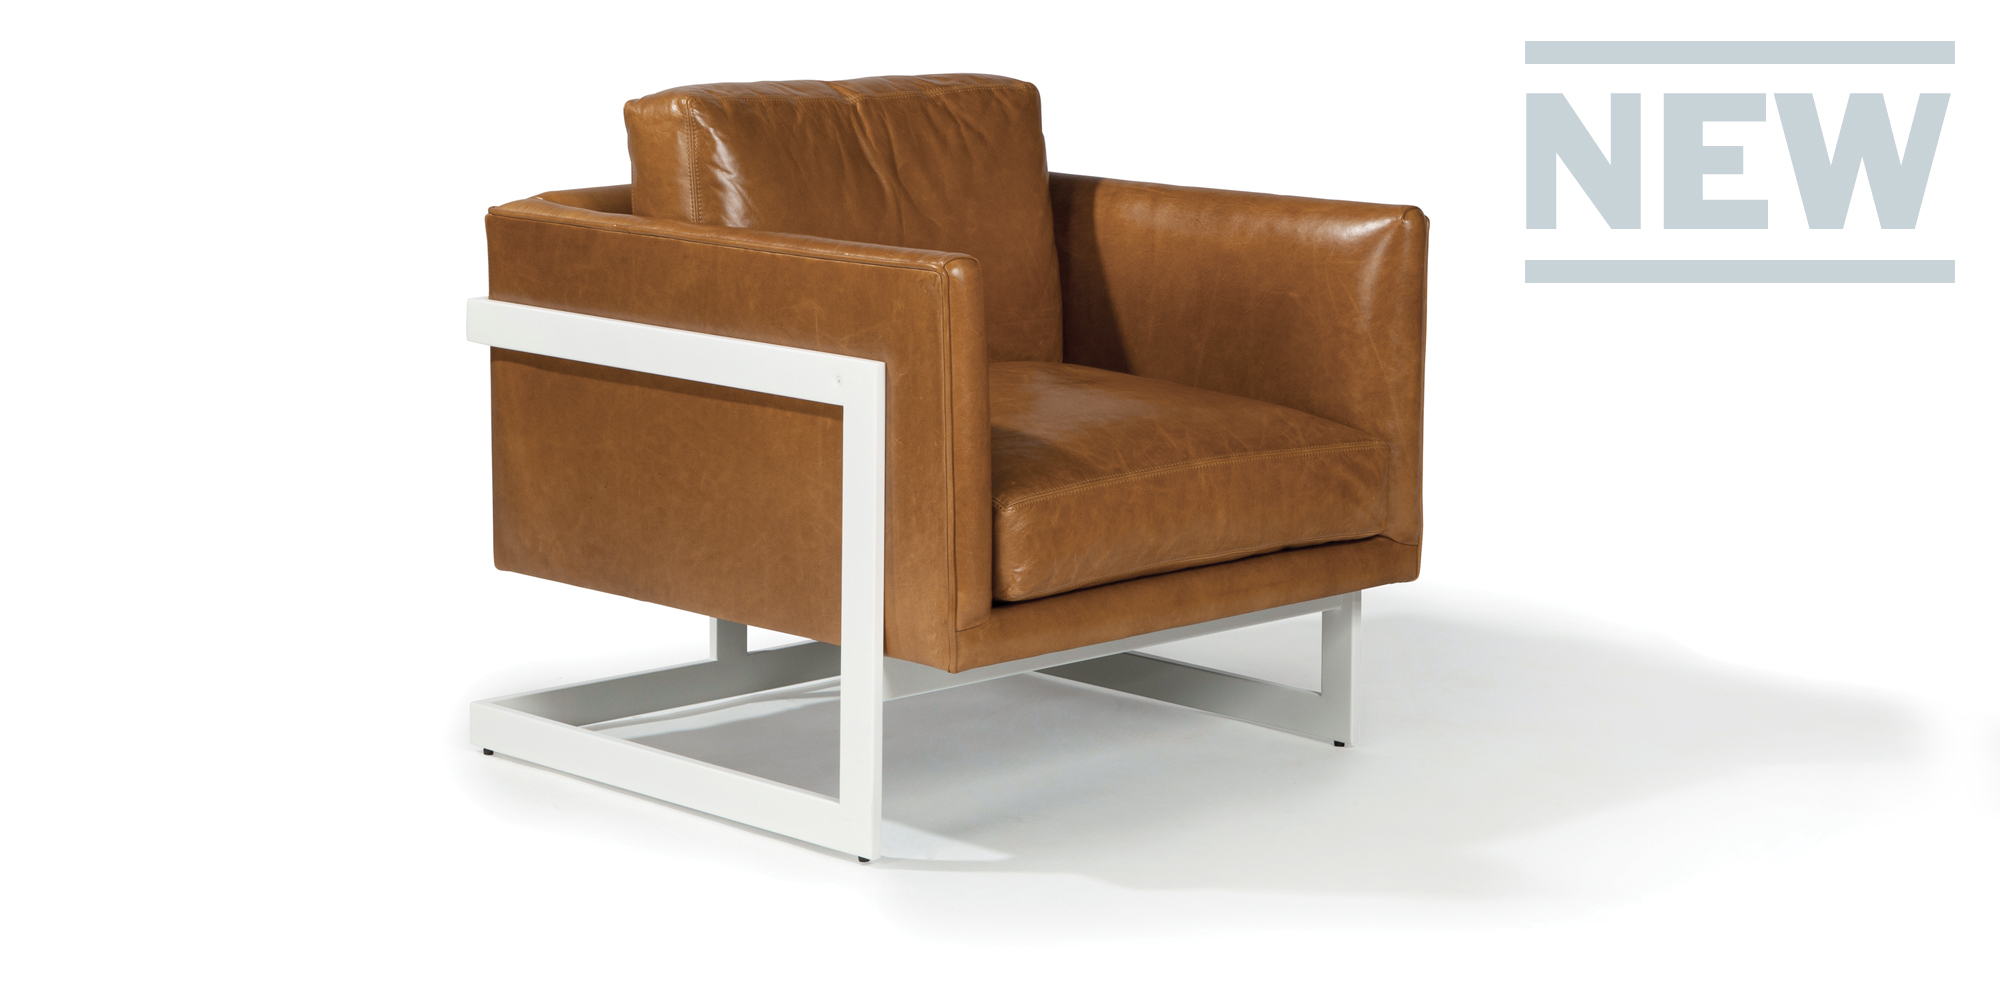 989 Design Classic Lounge Chair (WPC Finish)